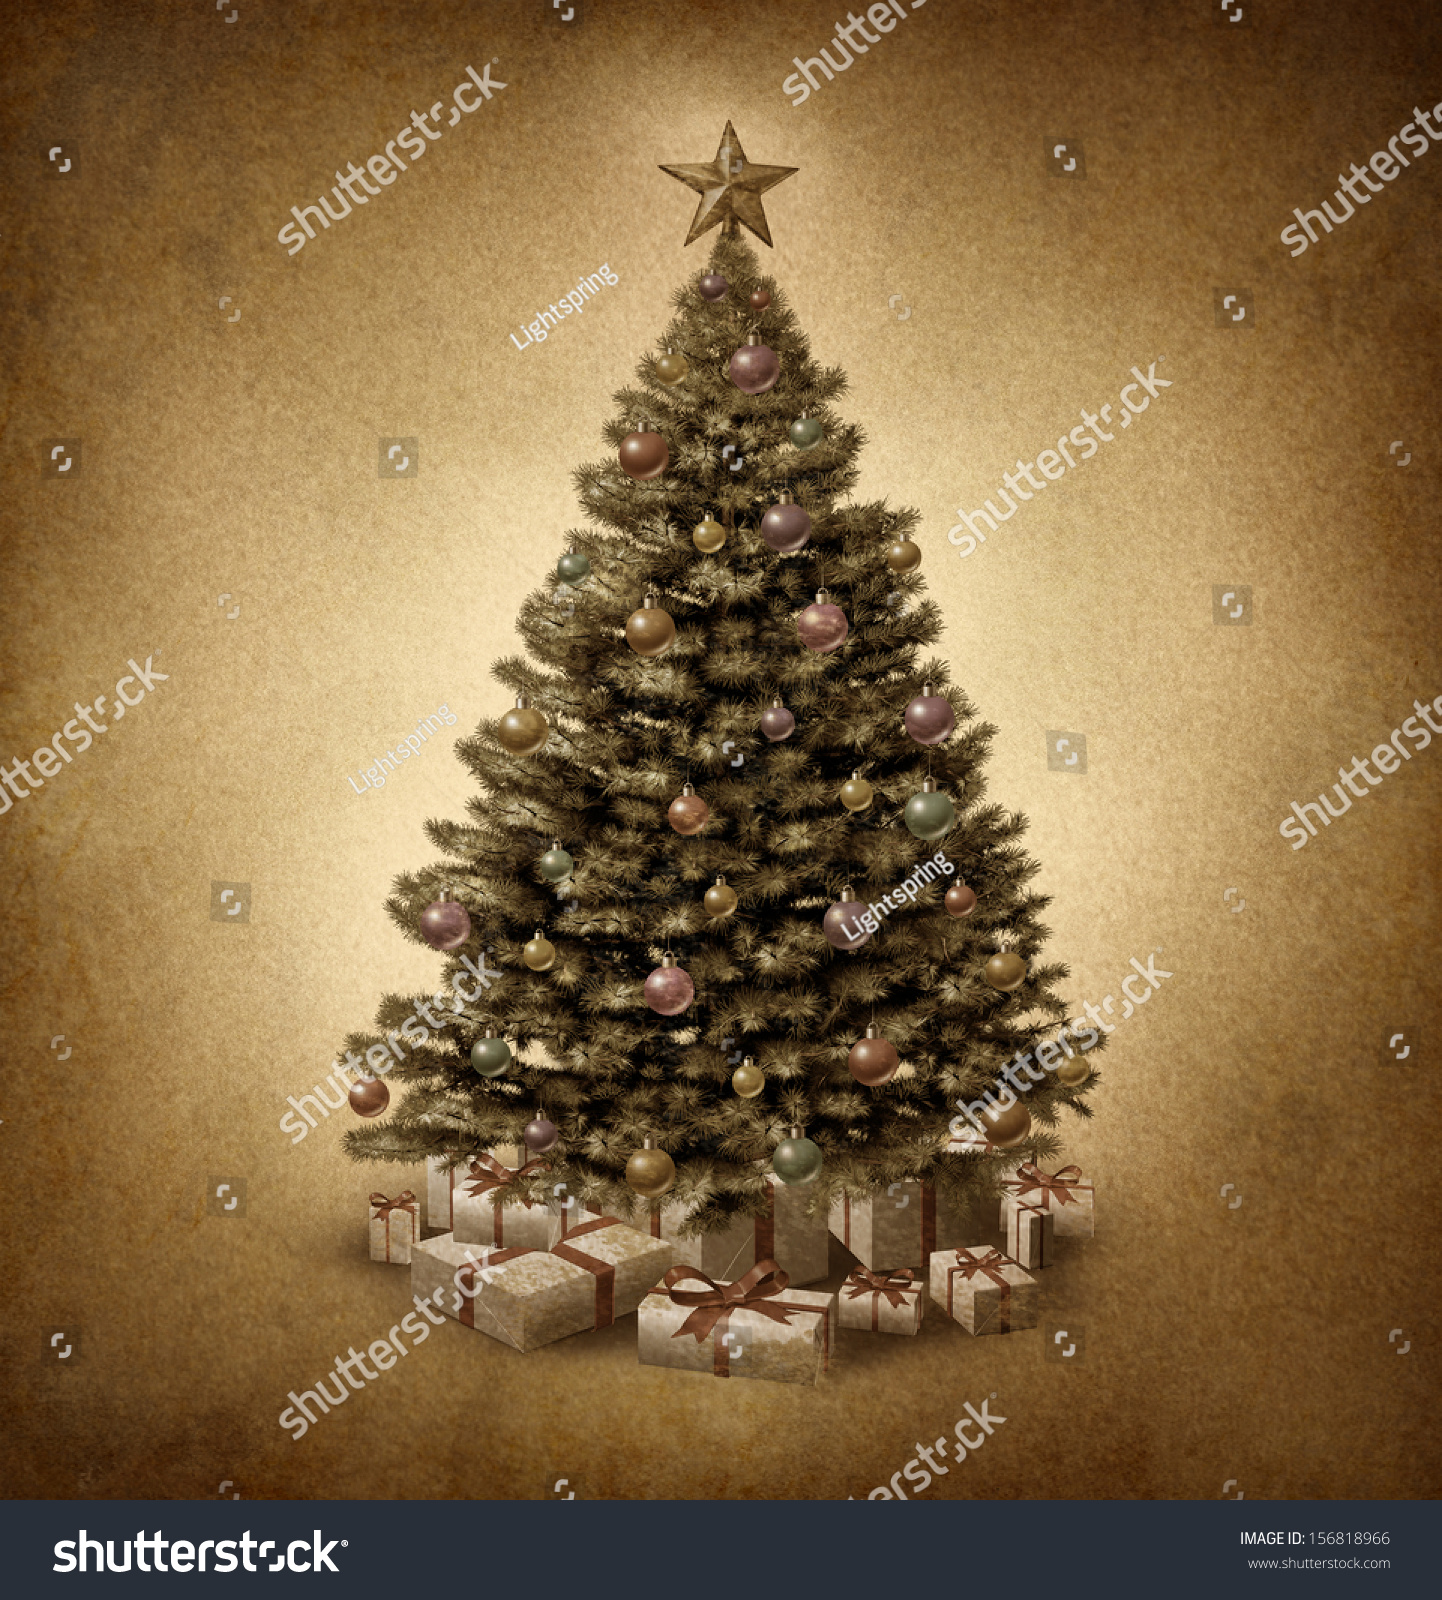 Old fashioned christmas tree on vintage stock illustration